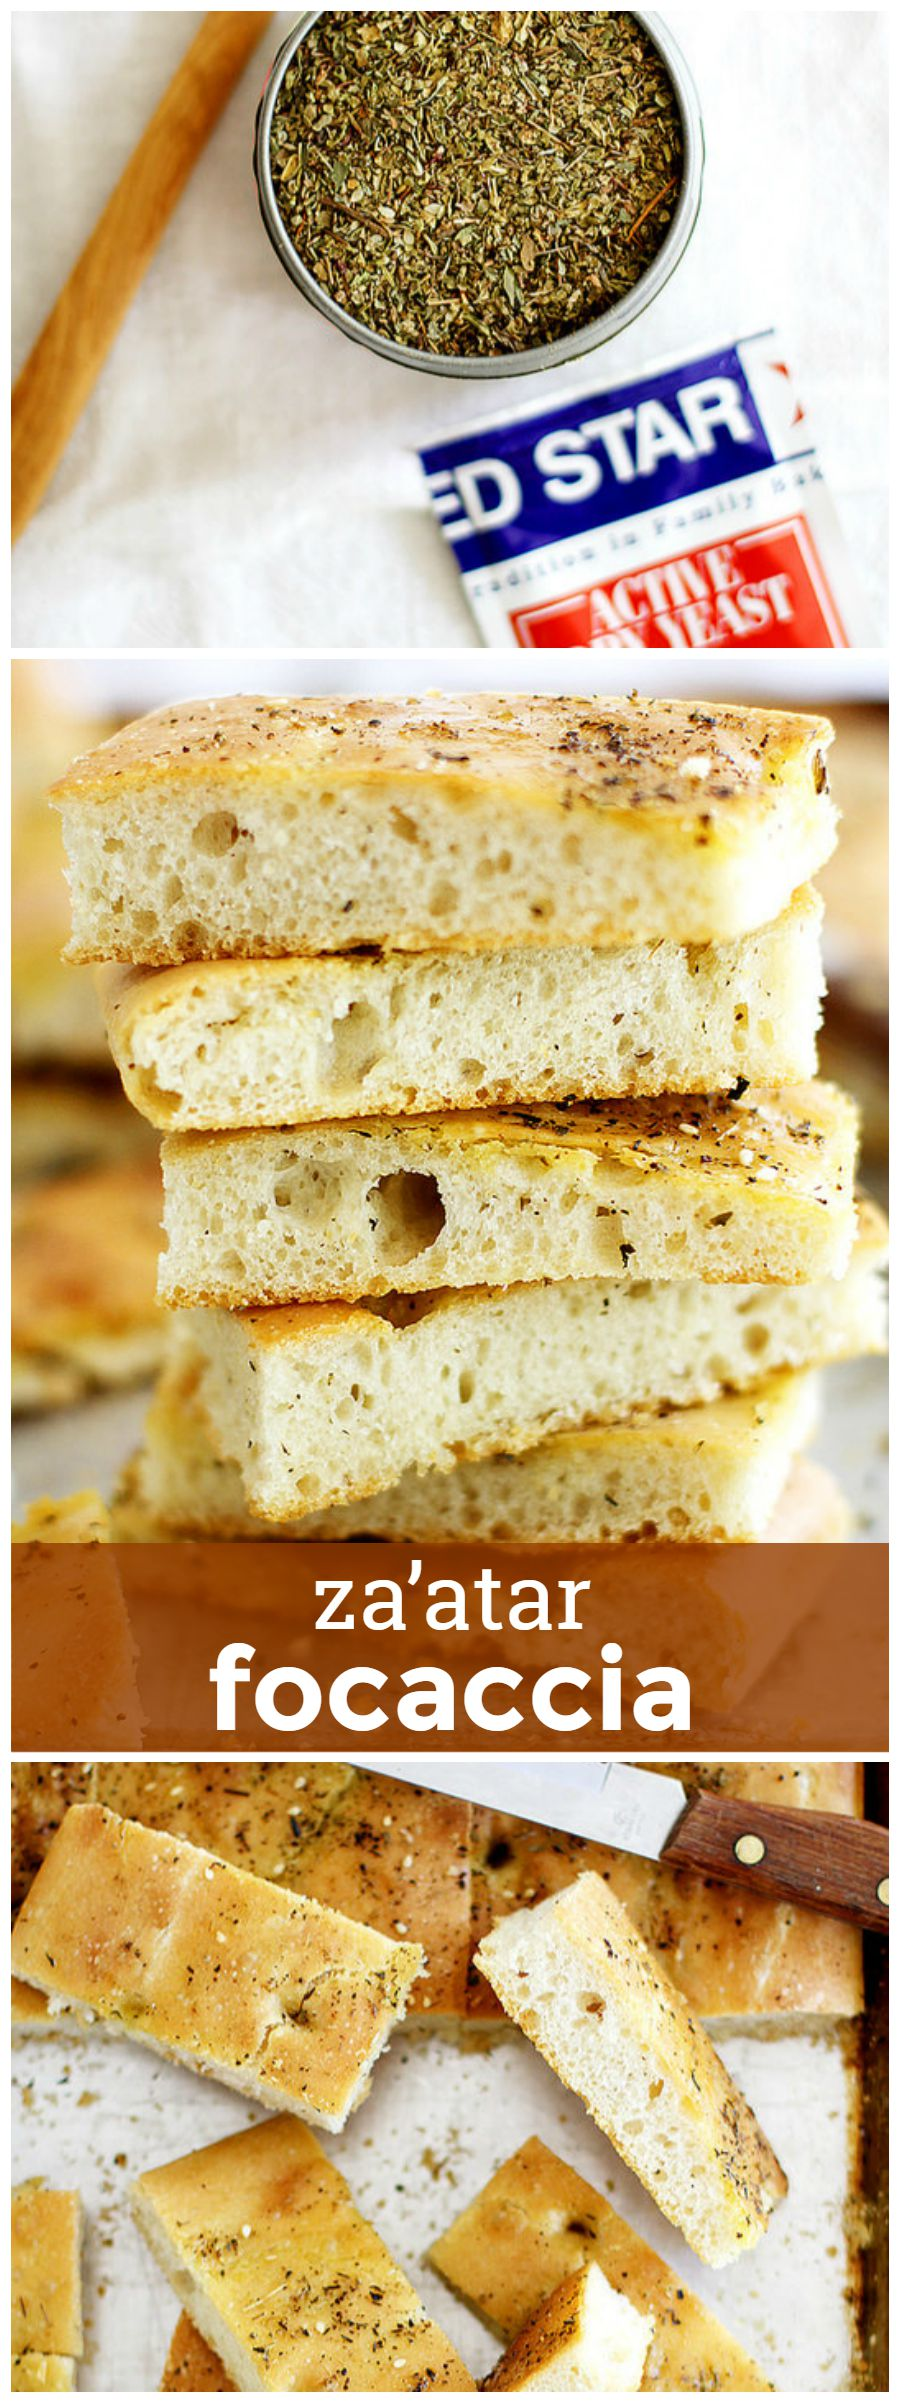 Za'atar Focaccia -- Tender focaccia flavored with savory za'atar spices. girlversusdough.com @girlversusdough